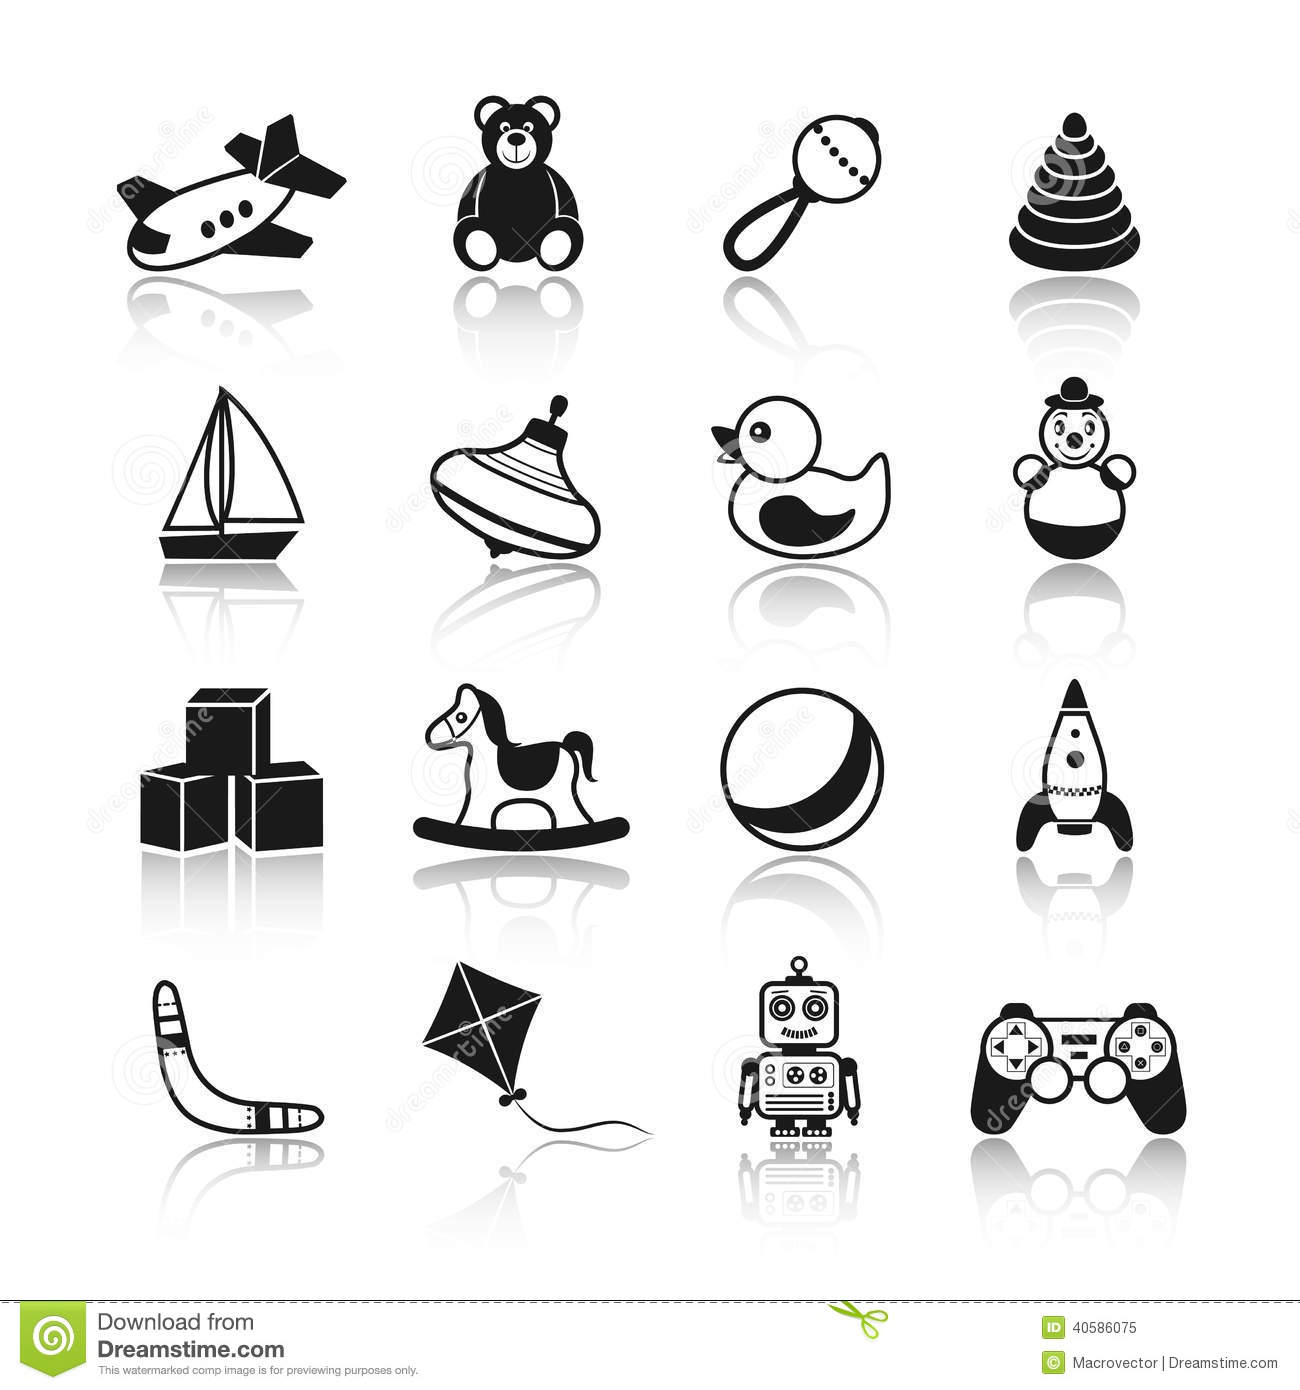 Toddler Toys Black And White : Toys black icons set stock vector image